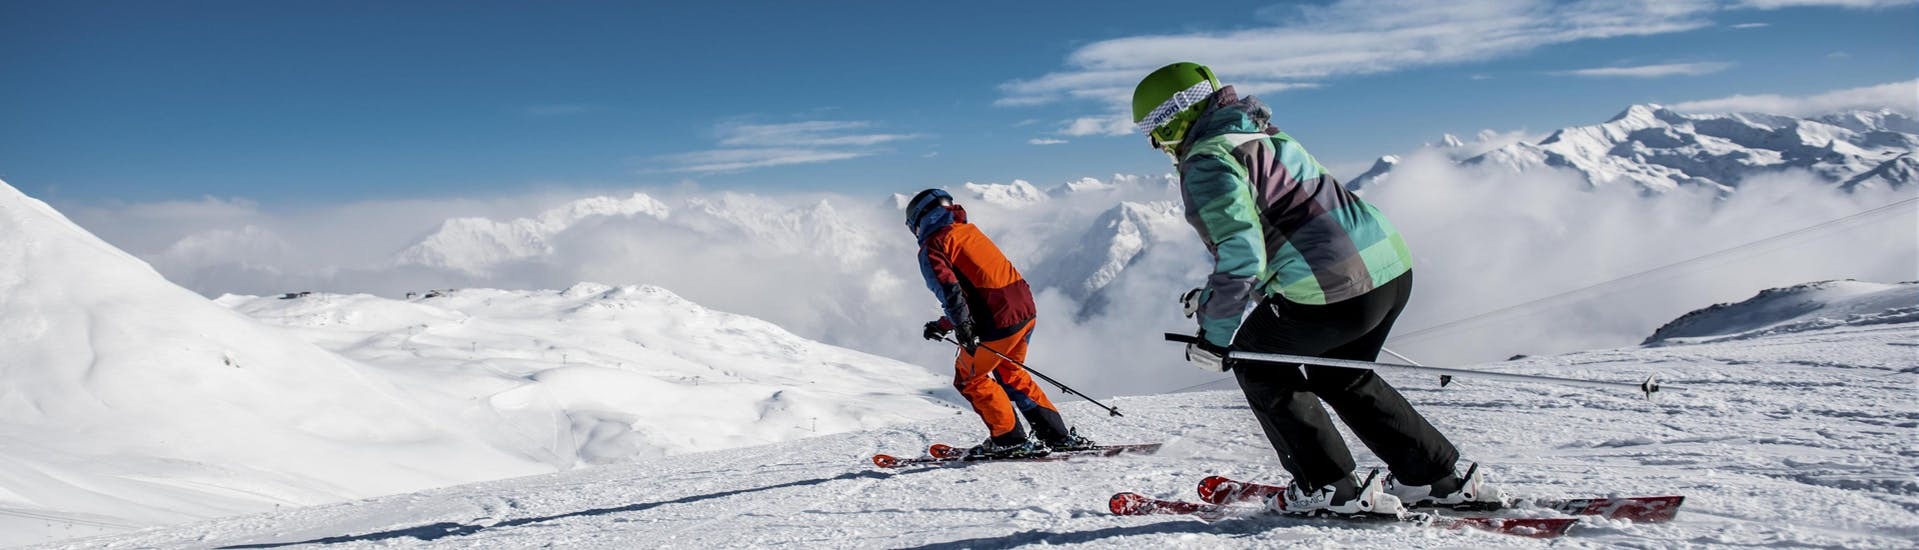 Two skiers are skiing down a freshly prepared slope in the Swiss ski resort of Klosters, a popular place to book ski lessons with one of the local ski schools.